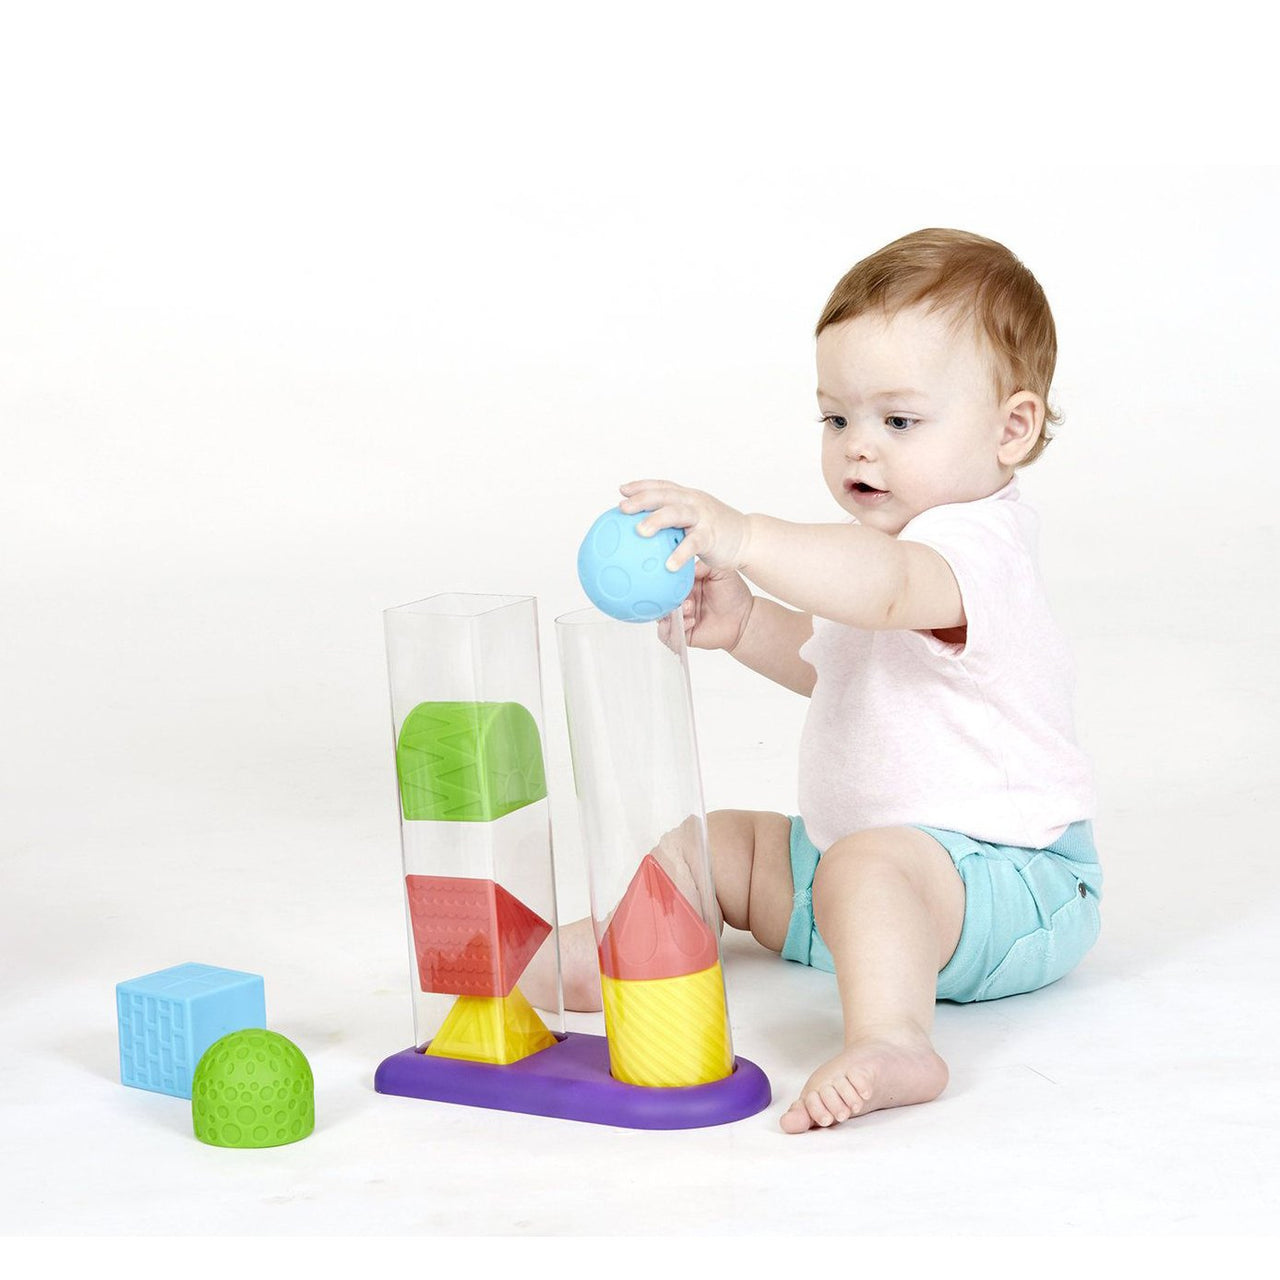 Geostackers Sensory Toy - Rooms for Rascals